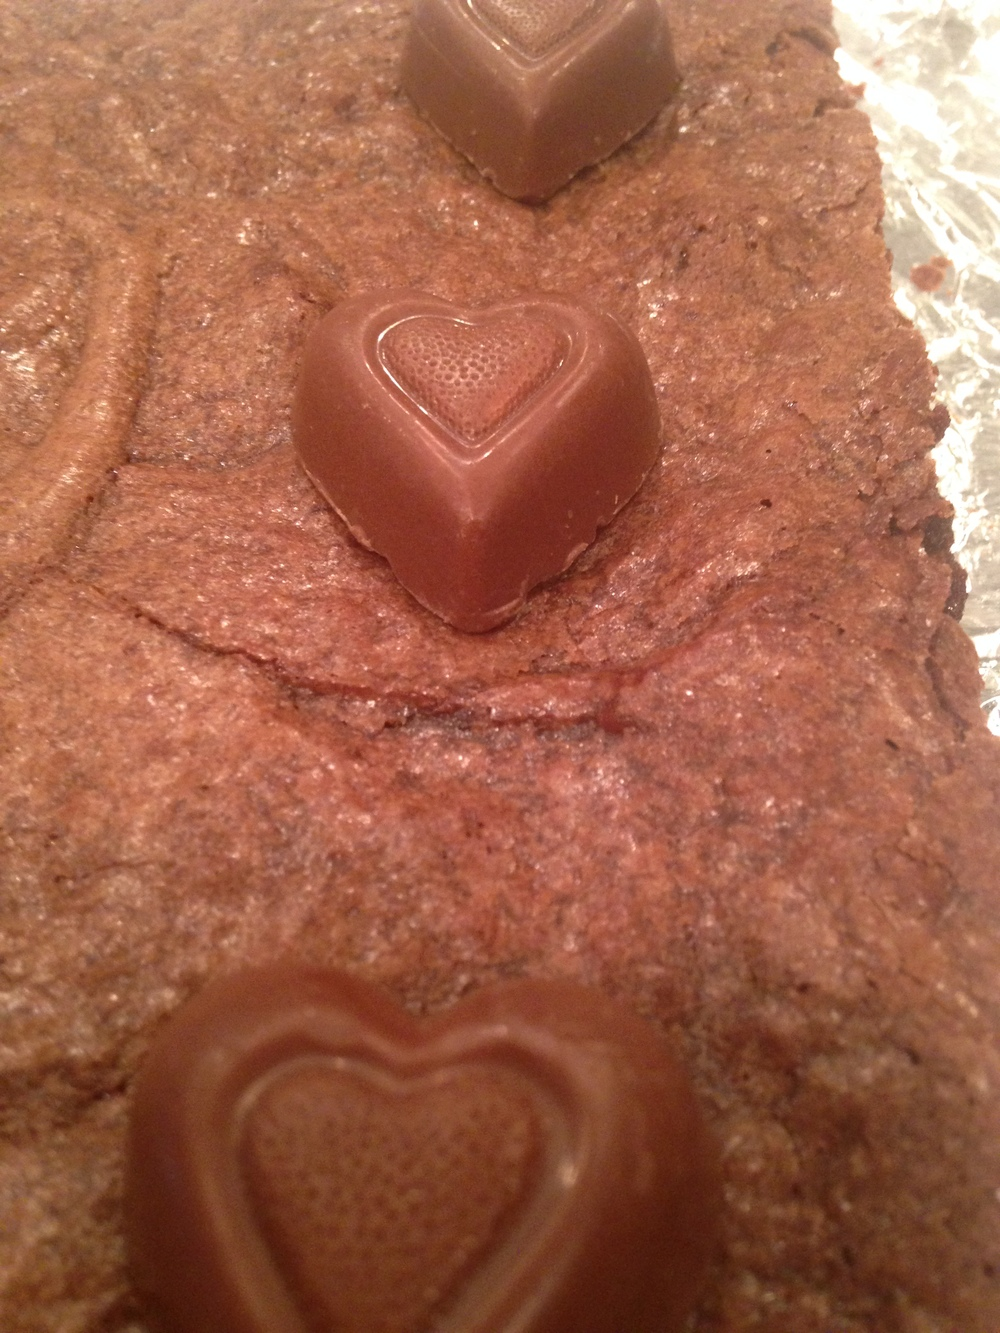 A closeup of the Reese's Peanut Butter Heart